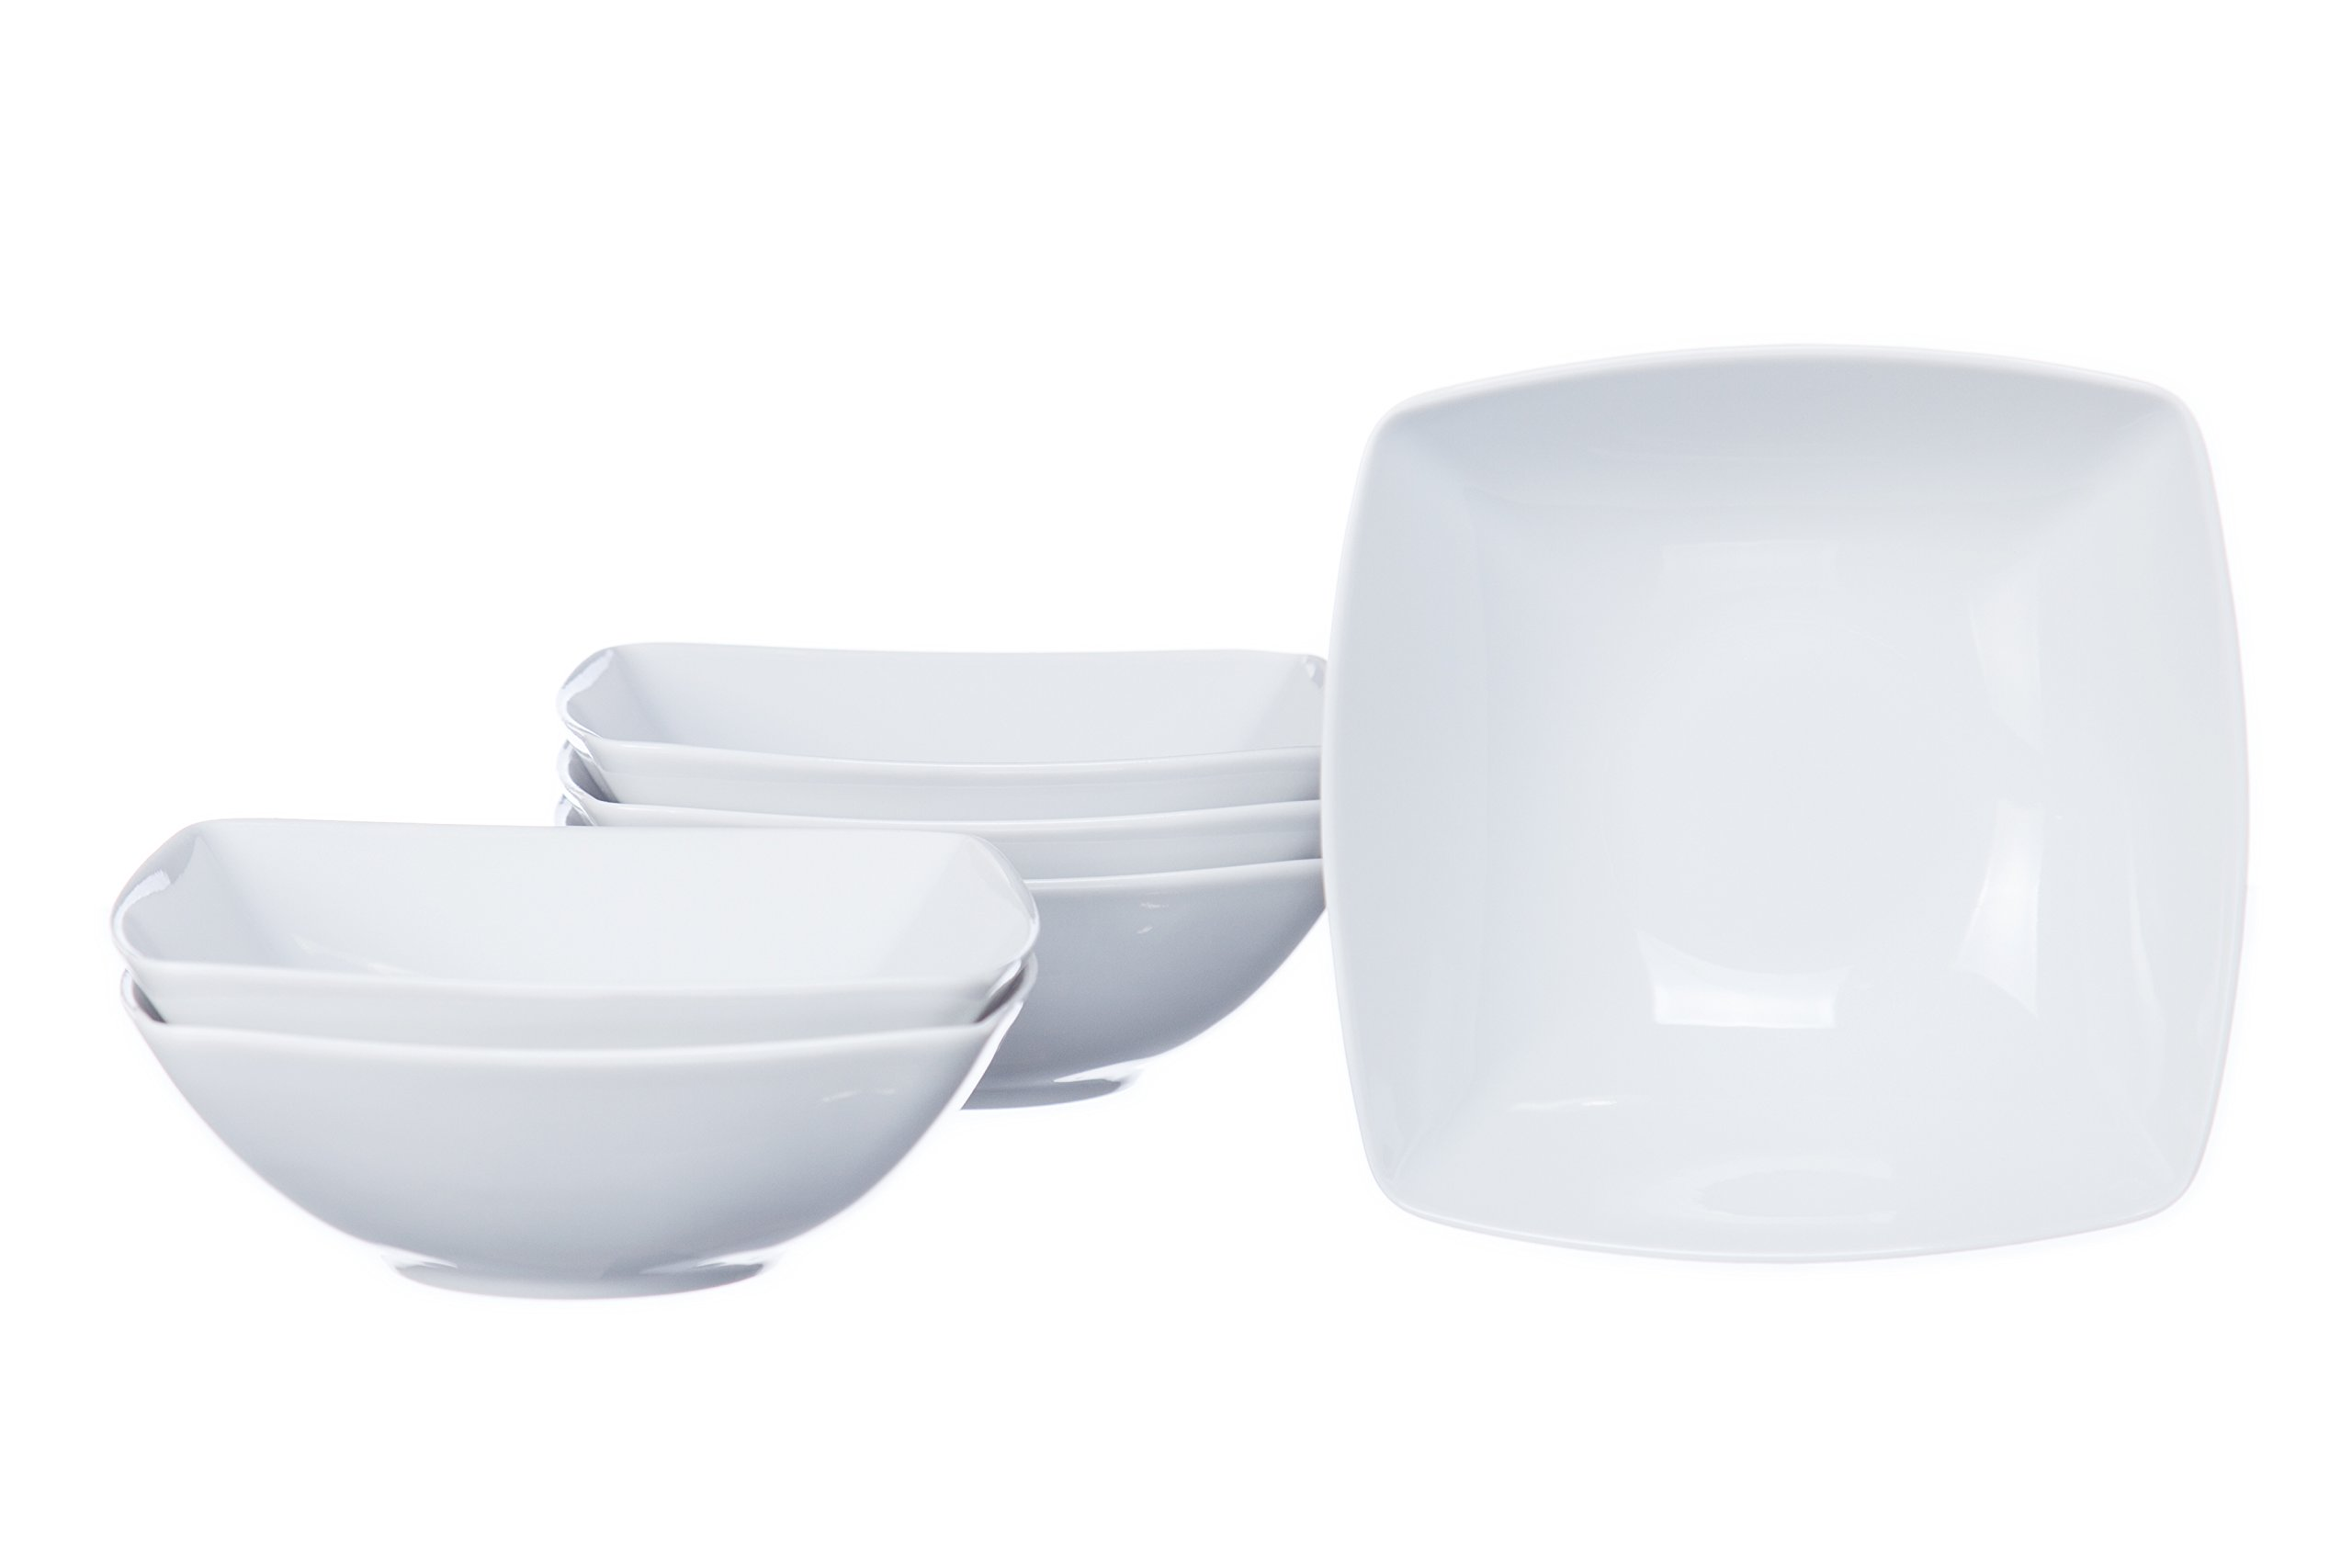 6-Piece Square Cereal/Soup/Salad Bowls, White Porcelain, Restaurant&Hotel Quality